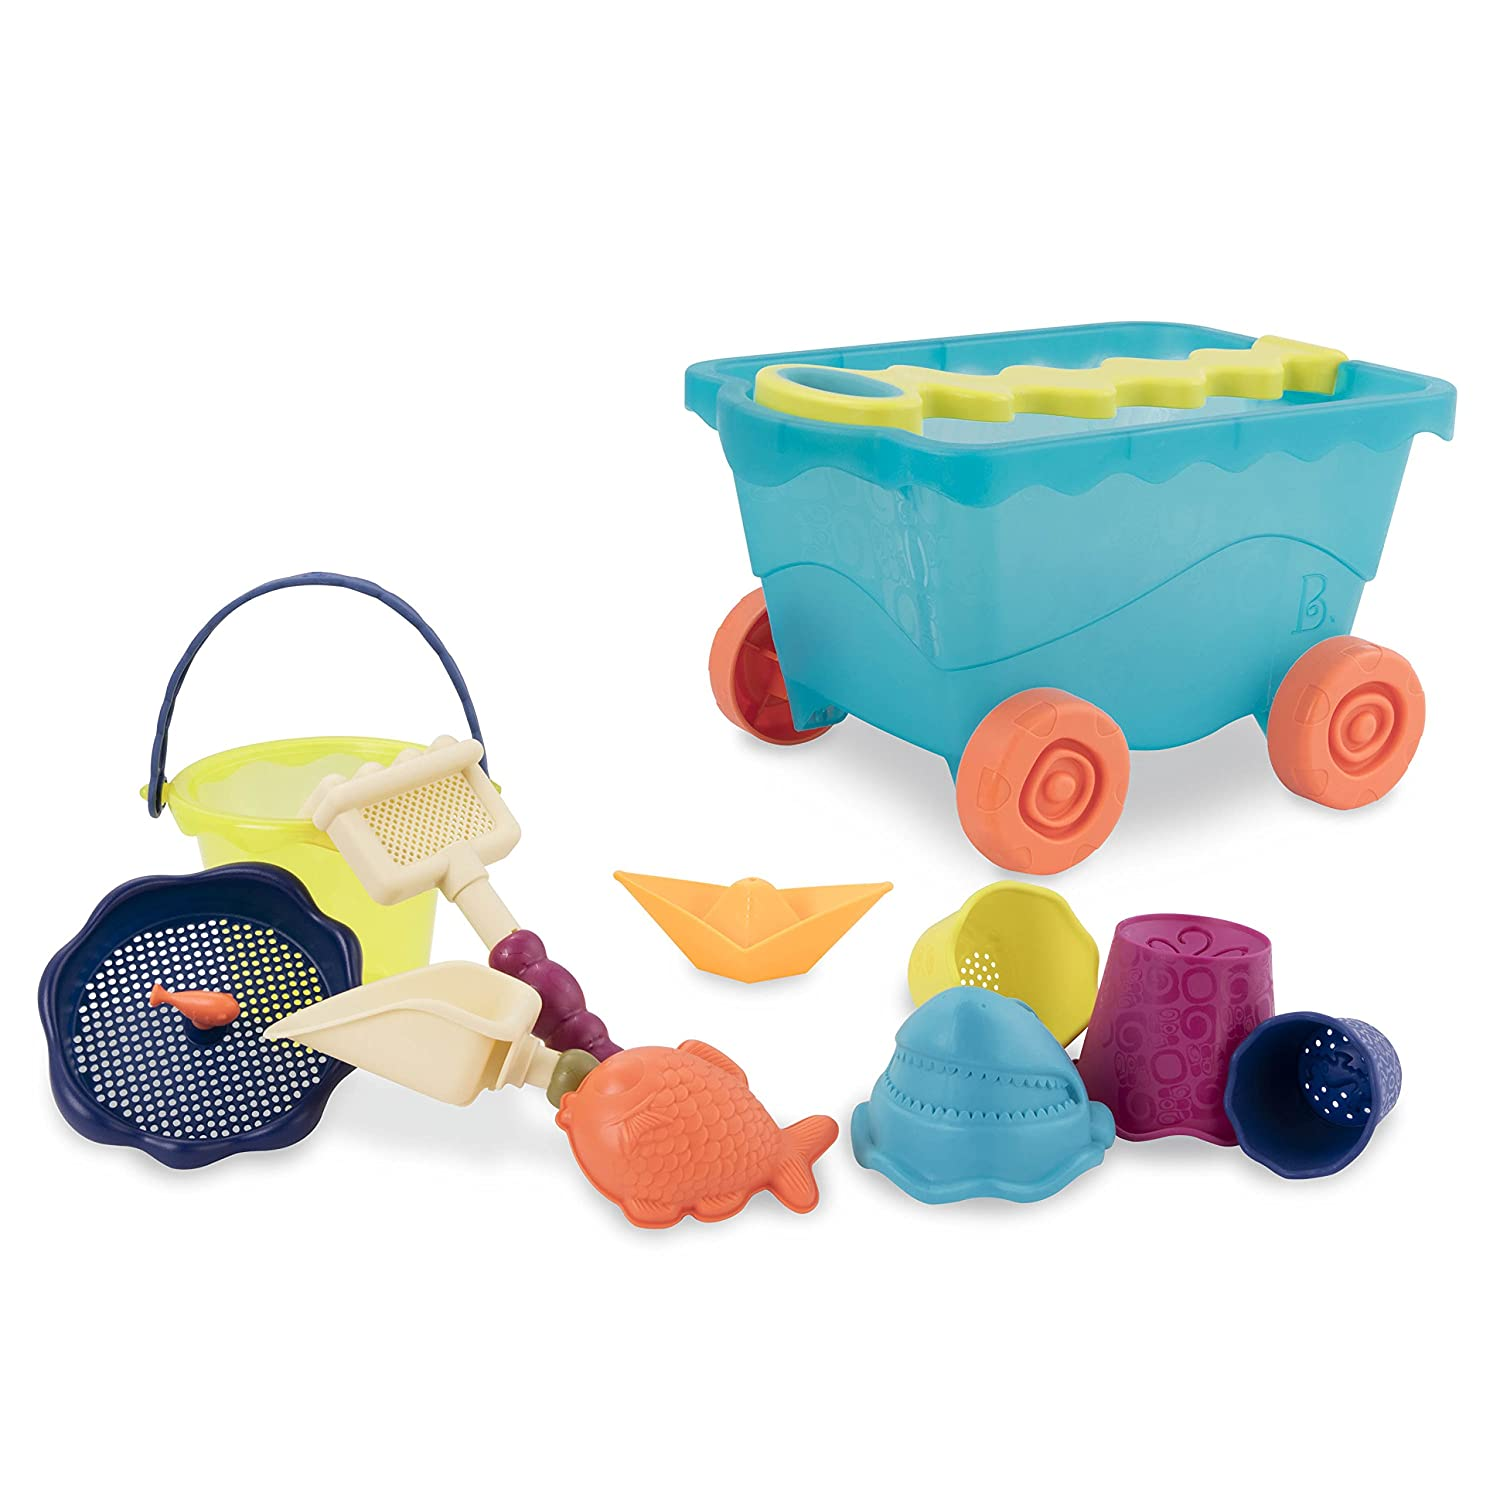 B. toys by Battat Wavy-Wagon Travel Beach Buggy (Sea Blue) with 11 Funky Sand Toys Phthalates and BPA Free 18 m+ BX1596Z